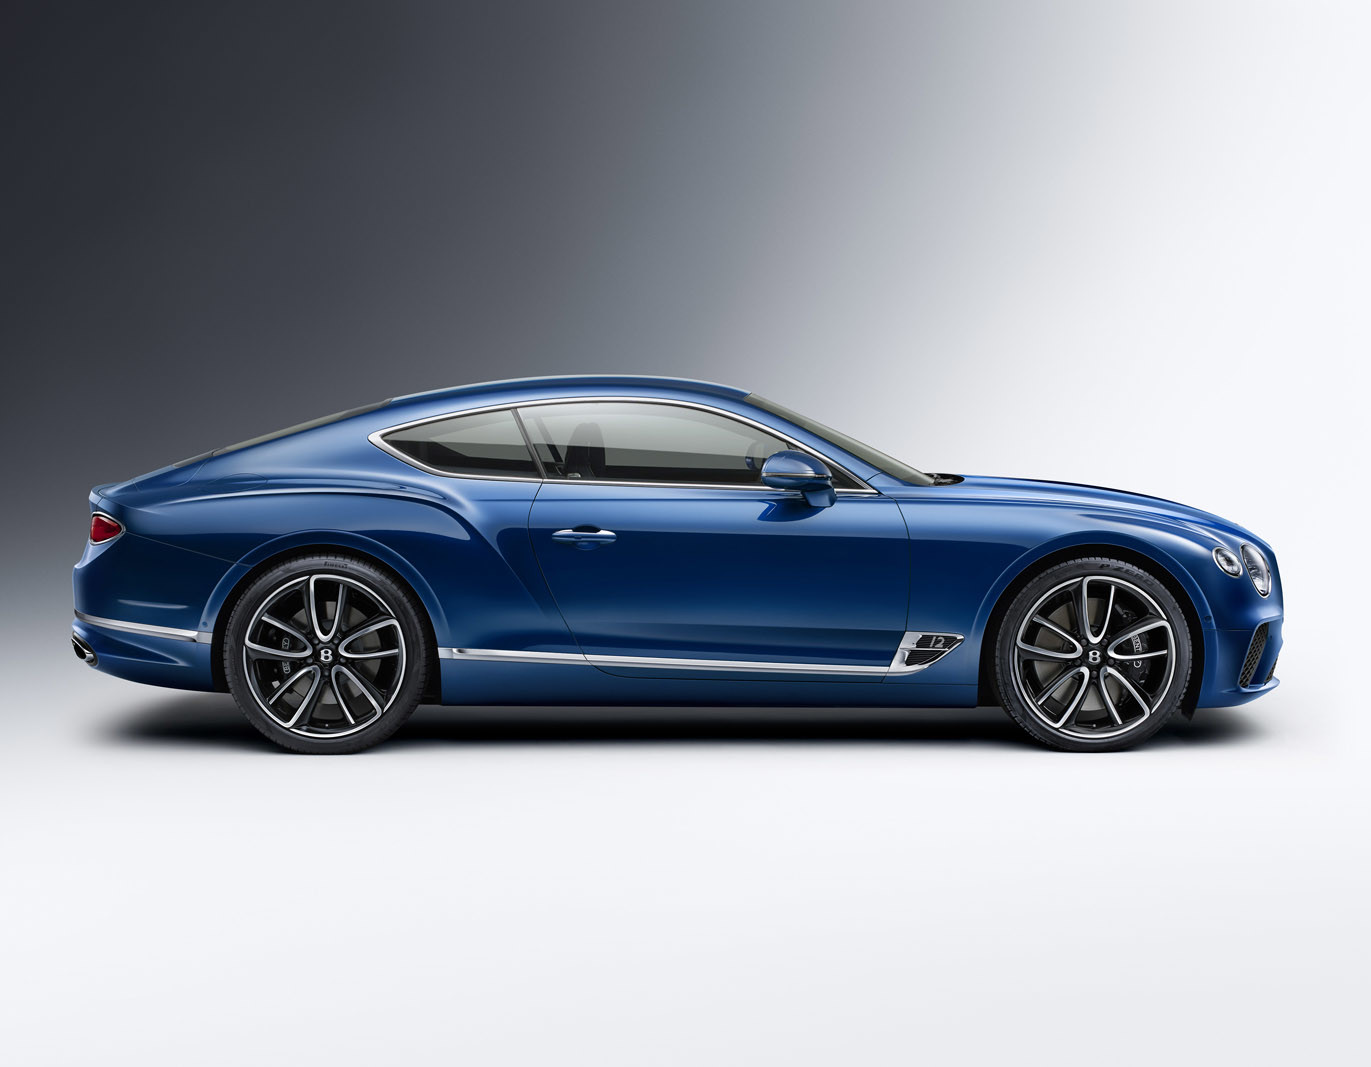 Foto de Bentley Continental GT 2018 (35/36)